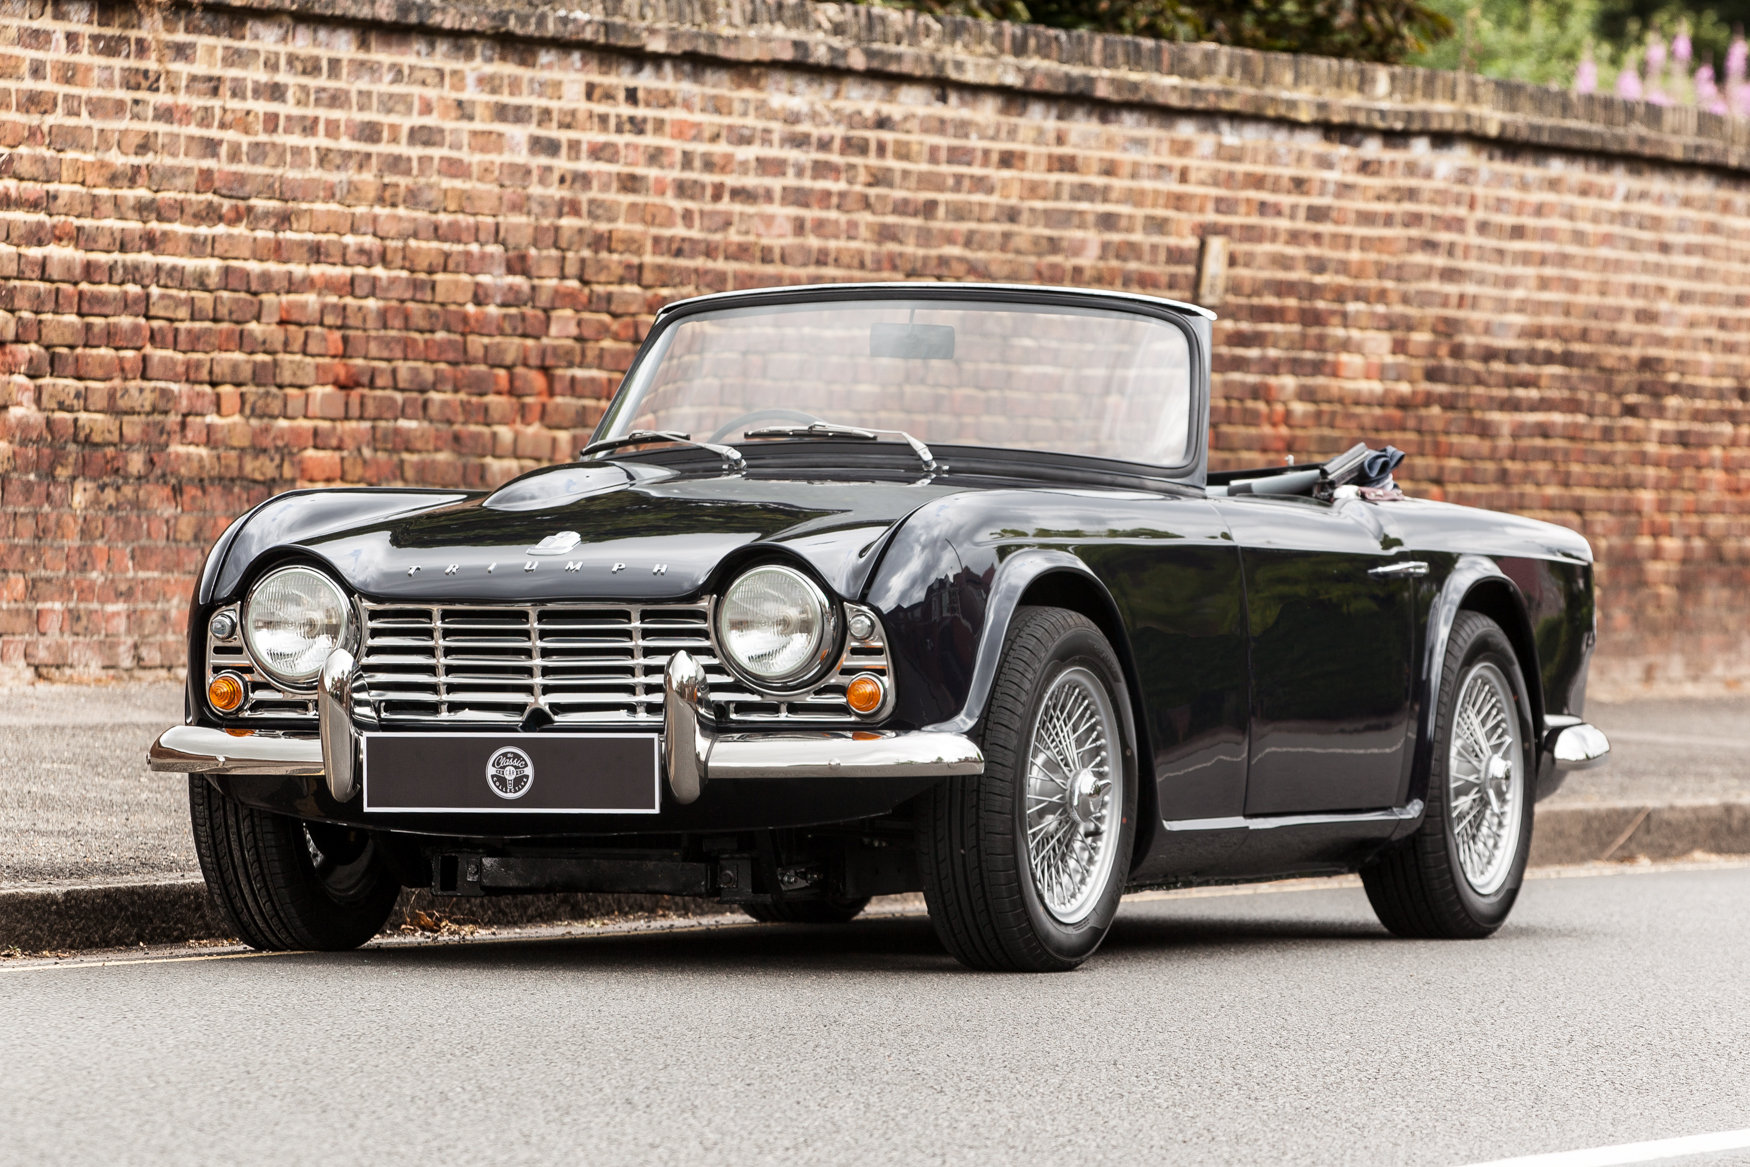 1964 Triumph TR4 with factory fitted overdrive For Sale (picture 1 of 5)